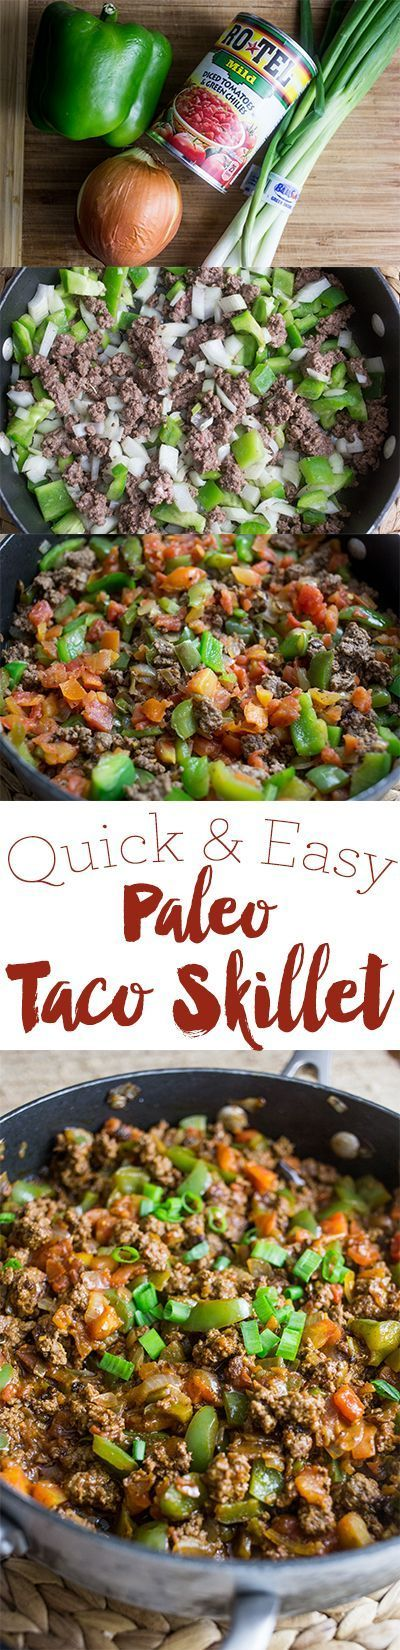 Quick and easy paleo taco skillet- a delicious, family pleasing one pot meal! sw…